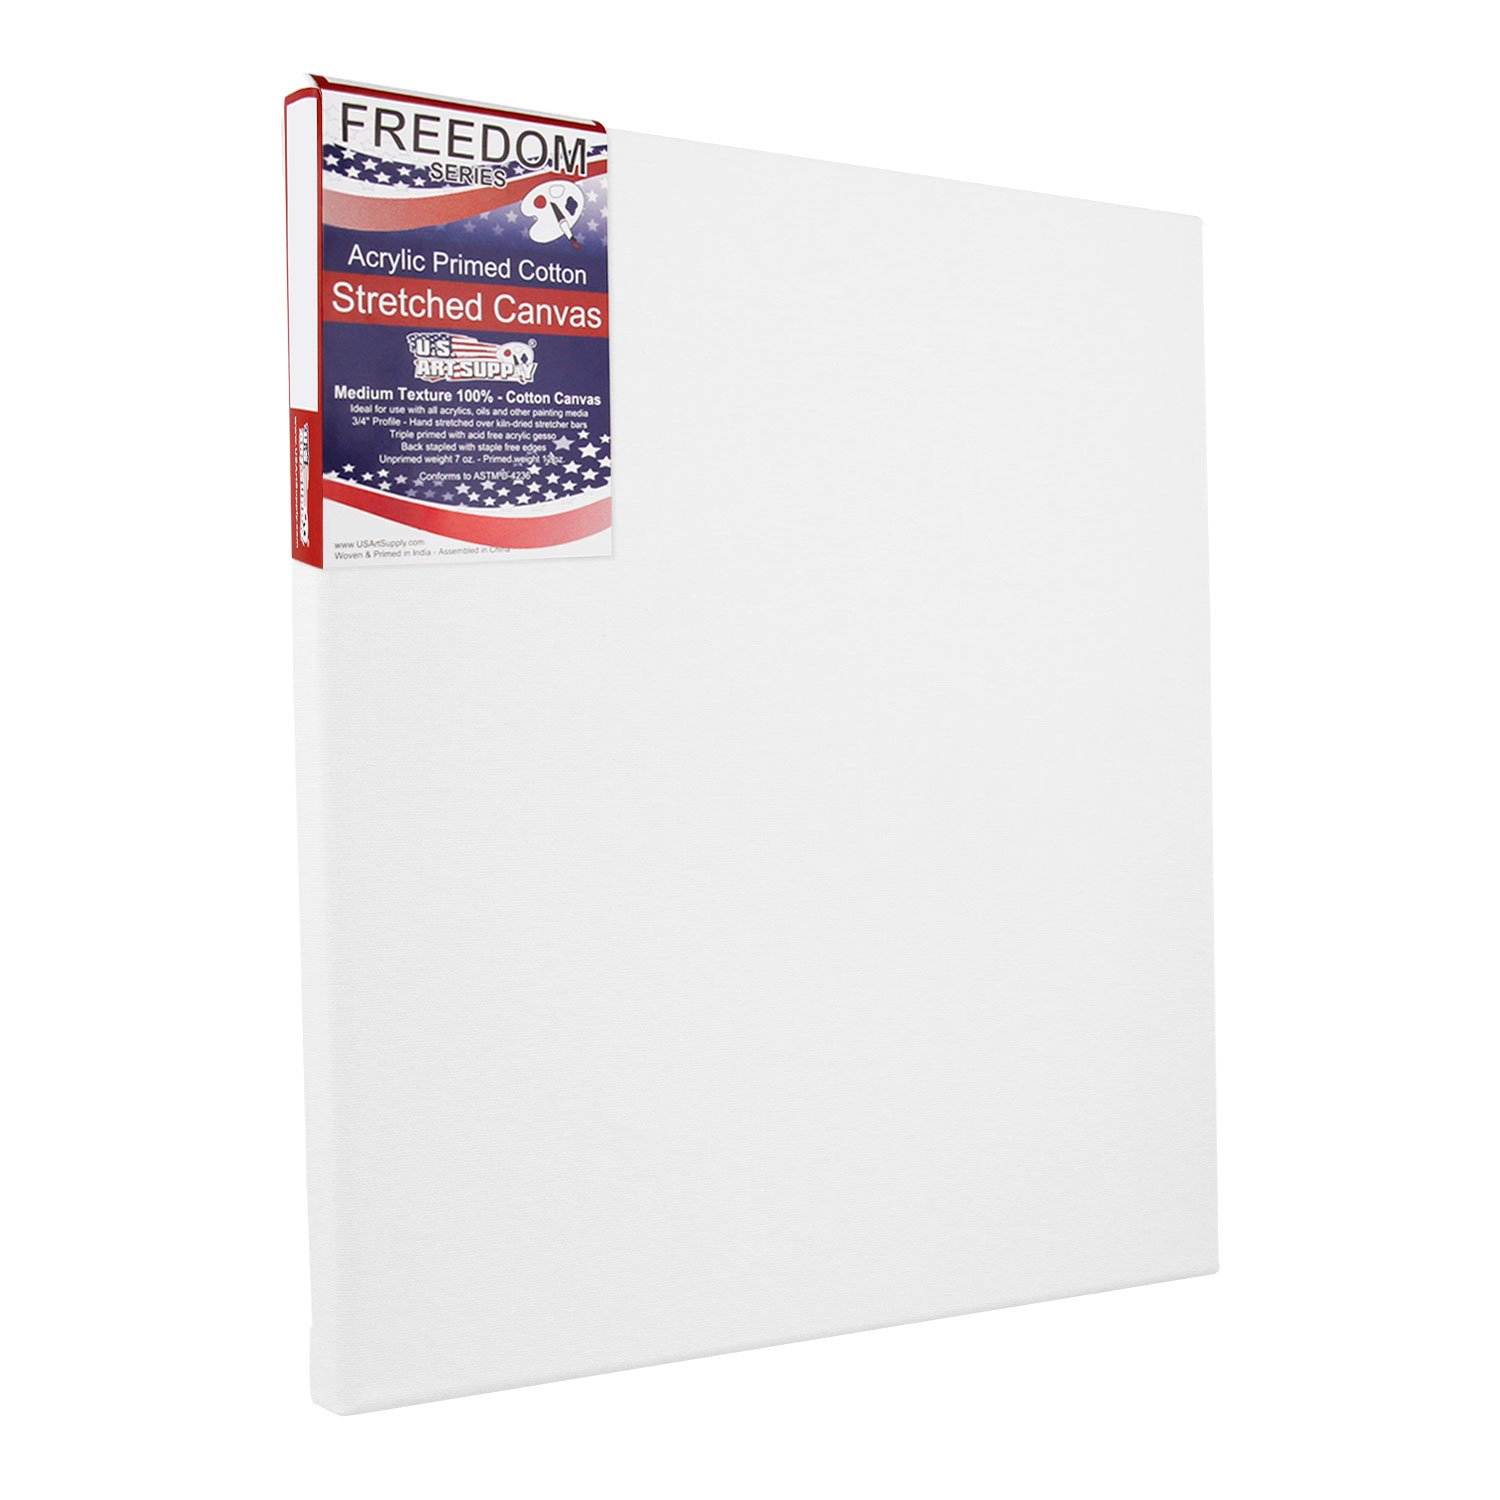 US Art Supply 36 X 36 inch Professional Quality Acid Free Stretched Canvas 6-Pack - 3/4 Profile 12 Ounce Primed Gesso - (1 Full Case of 6 Single Canvases) by US Art Supply (Image #1)